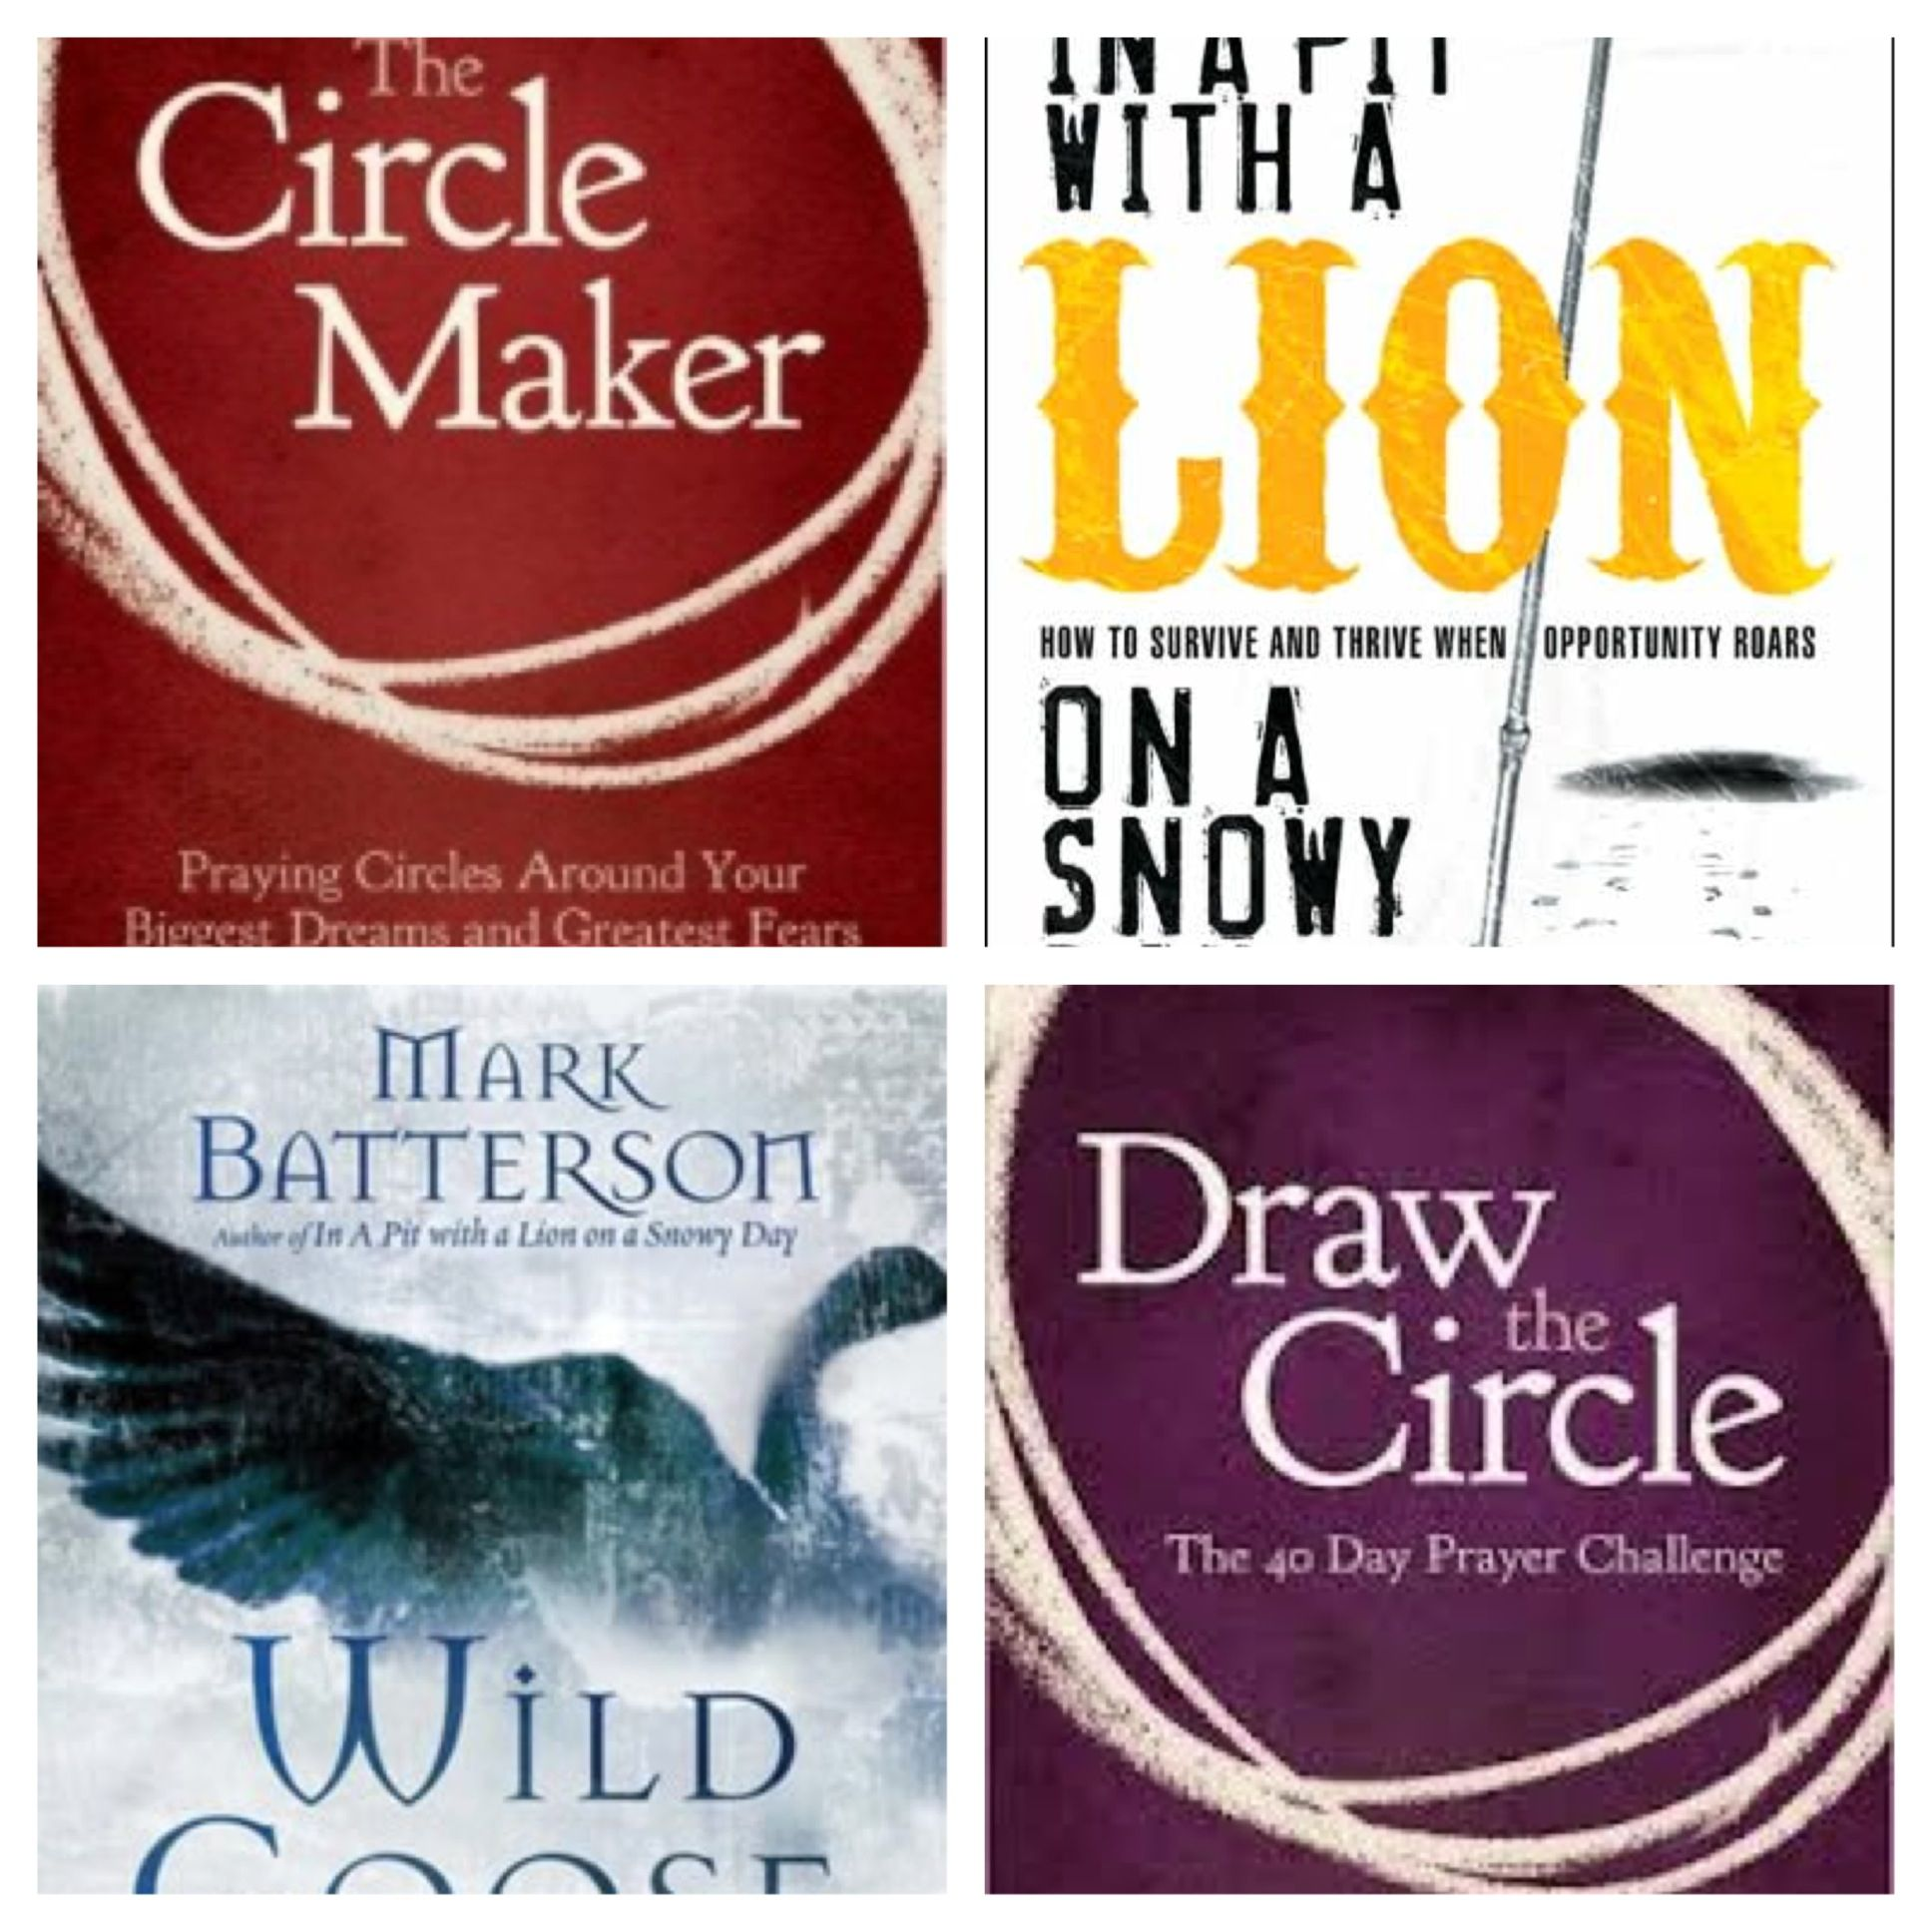 Mark Batterson Books Some Of My All Time Favorite Books Loved Them